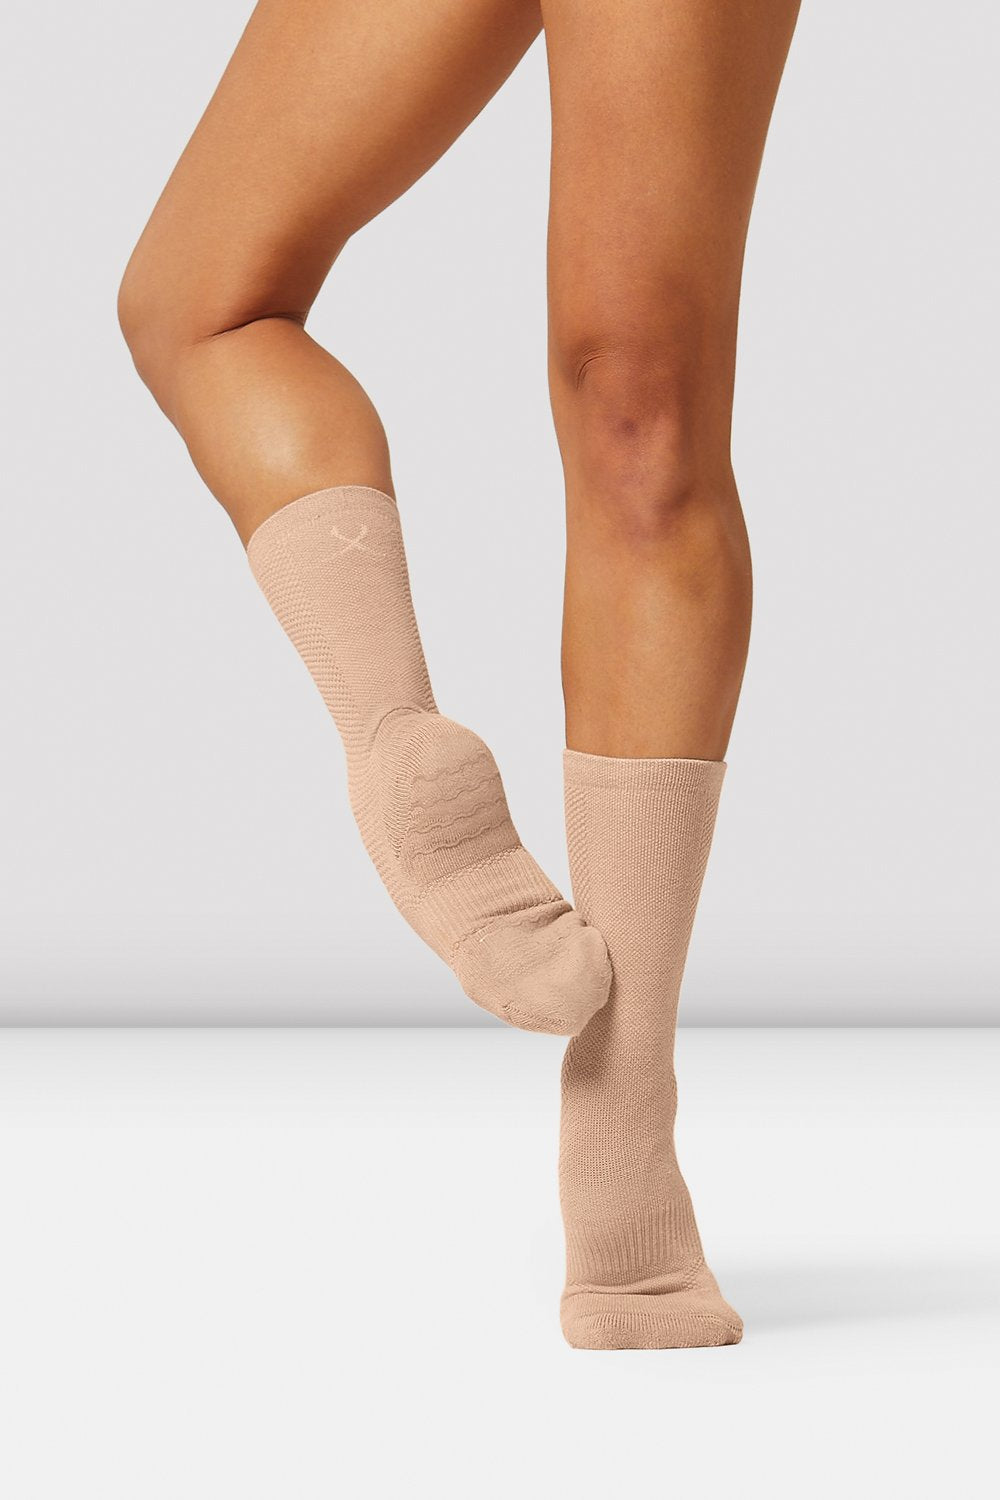 Blochsox Dance Socks - BLOCH US